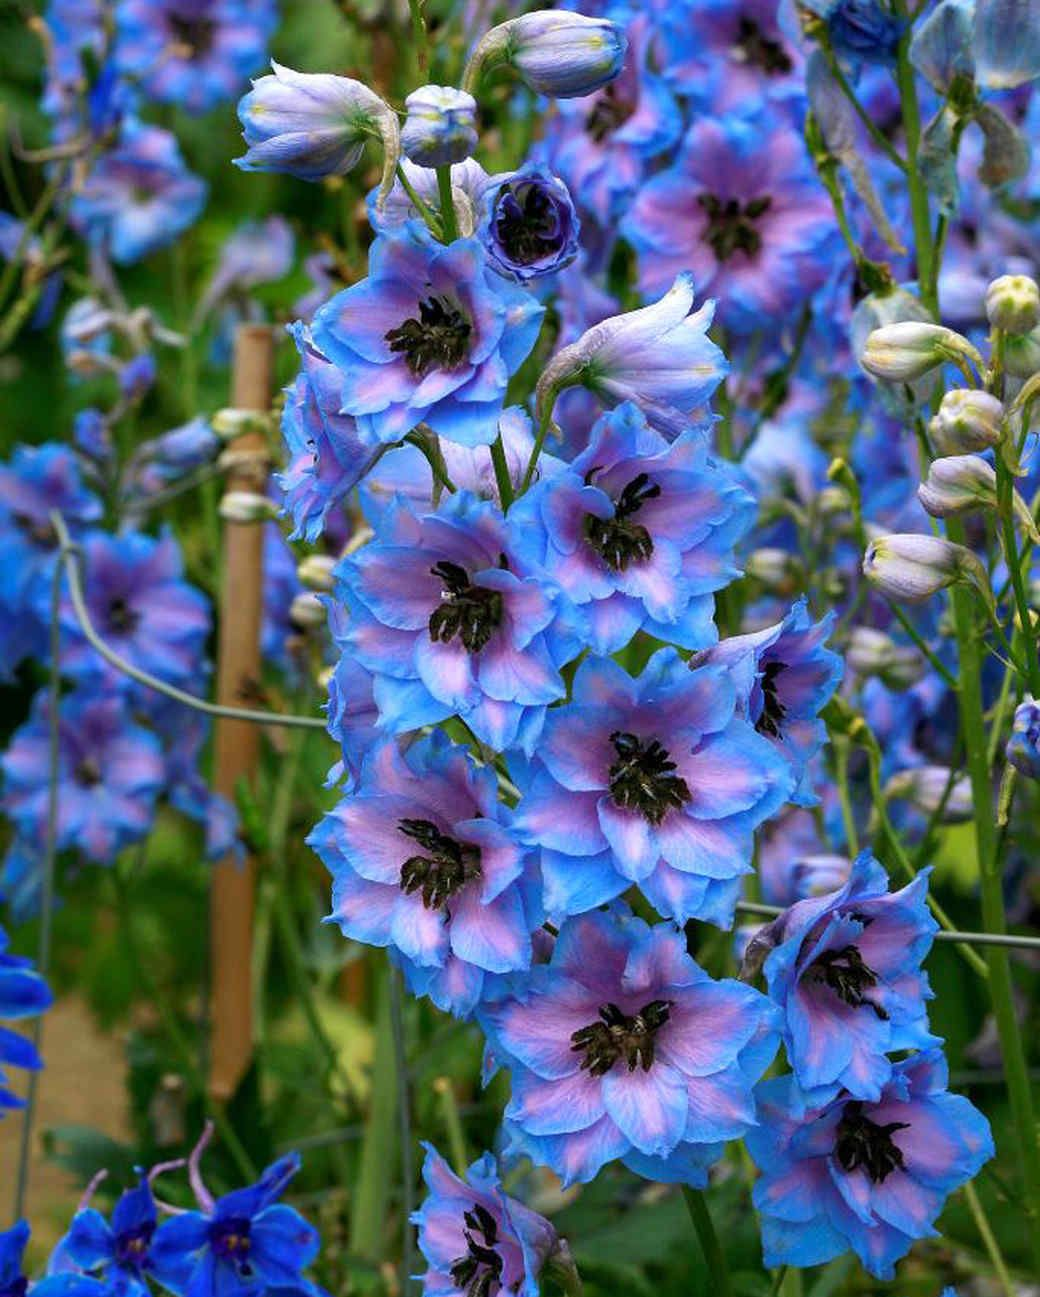 Common Hazardous Plants to Watch Out for This Summer